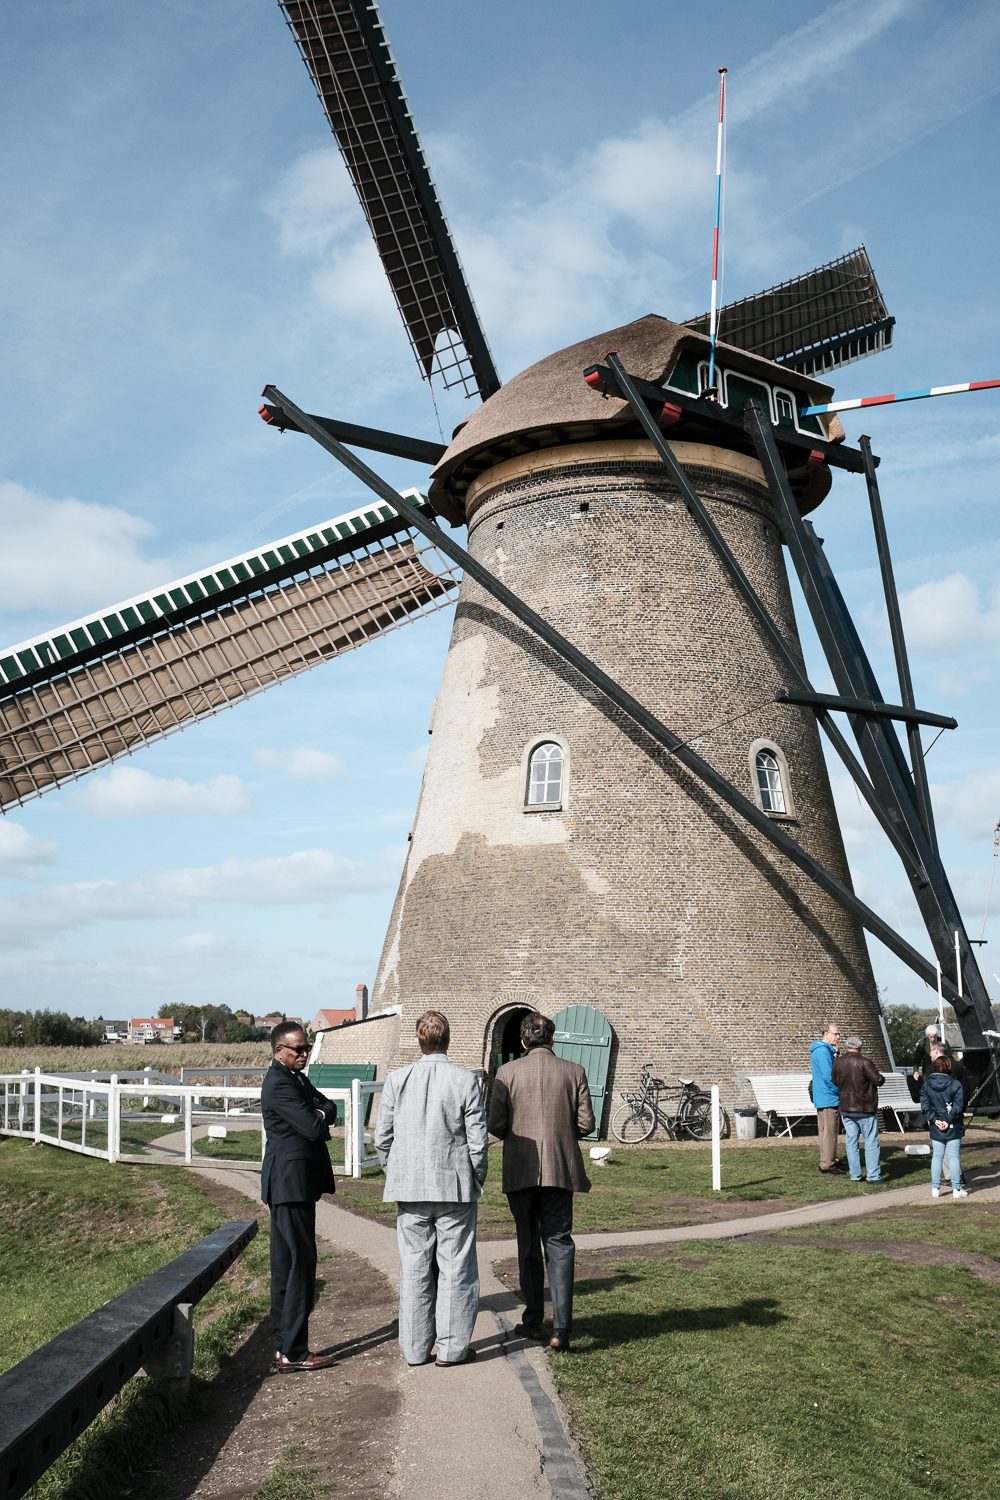 Council-members Dudley Gregorie and Michael Seekings observe a windmill at the Kinderjink World Heritage Site with Winslow Hastie, CEO of Historic Charleston Foundation